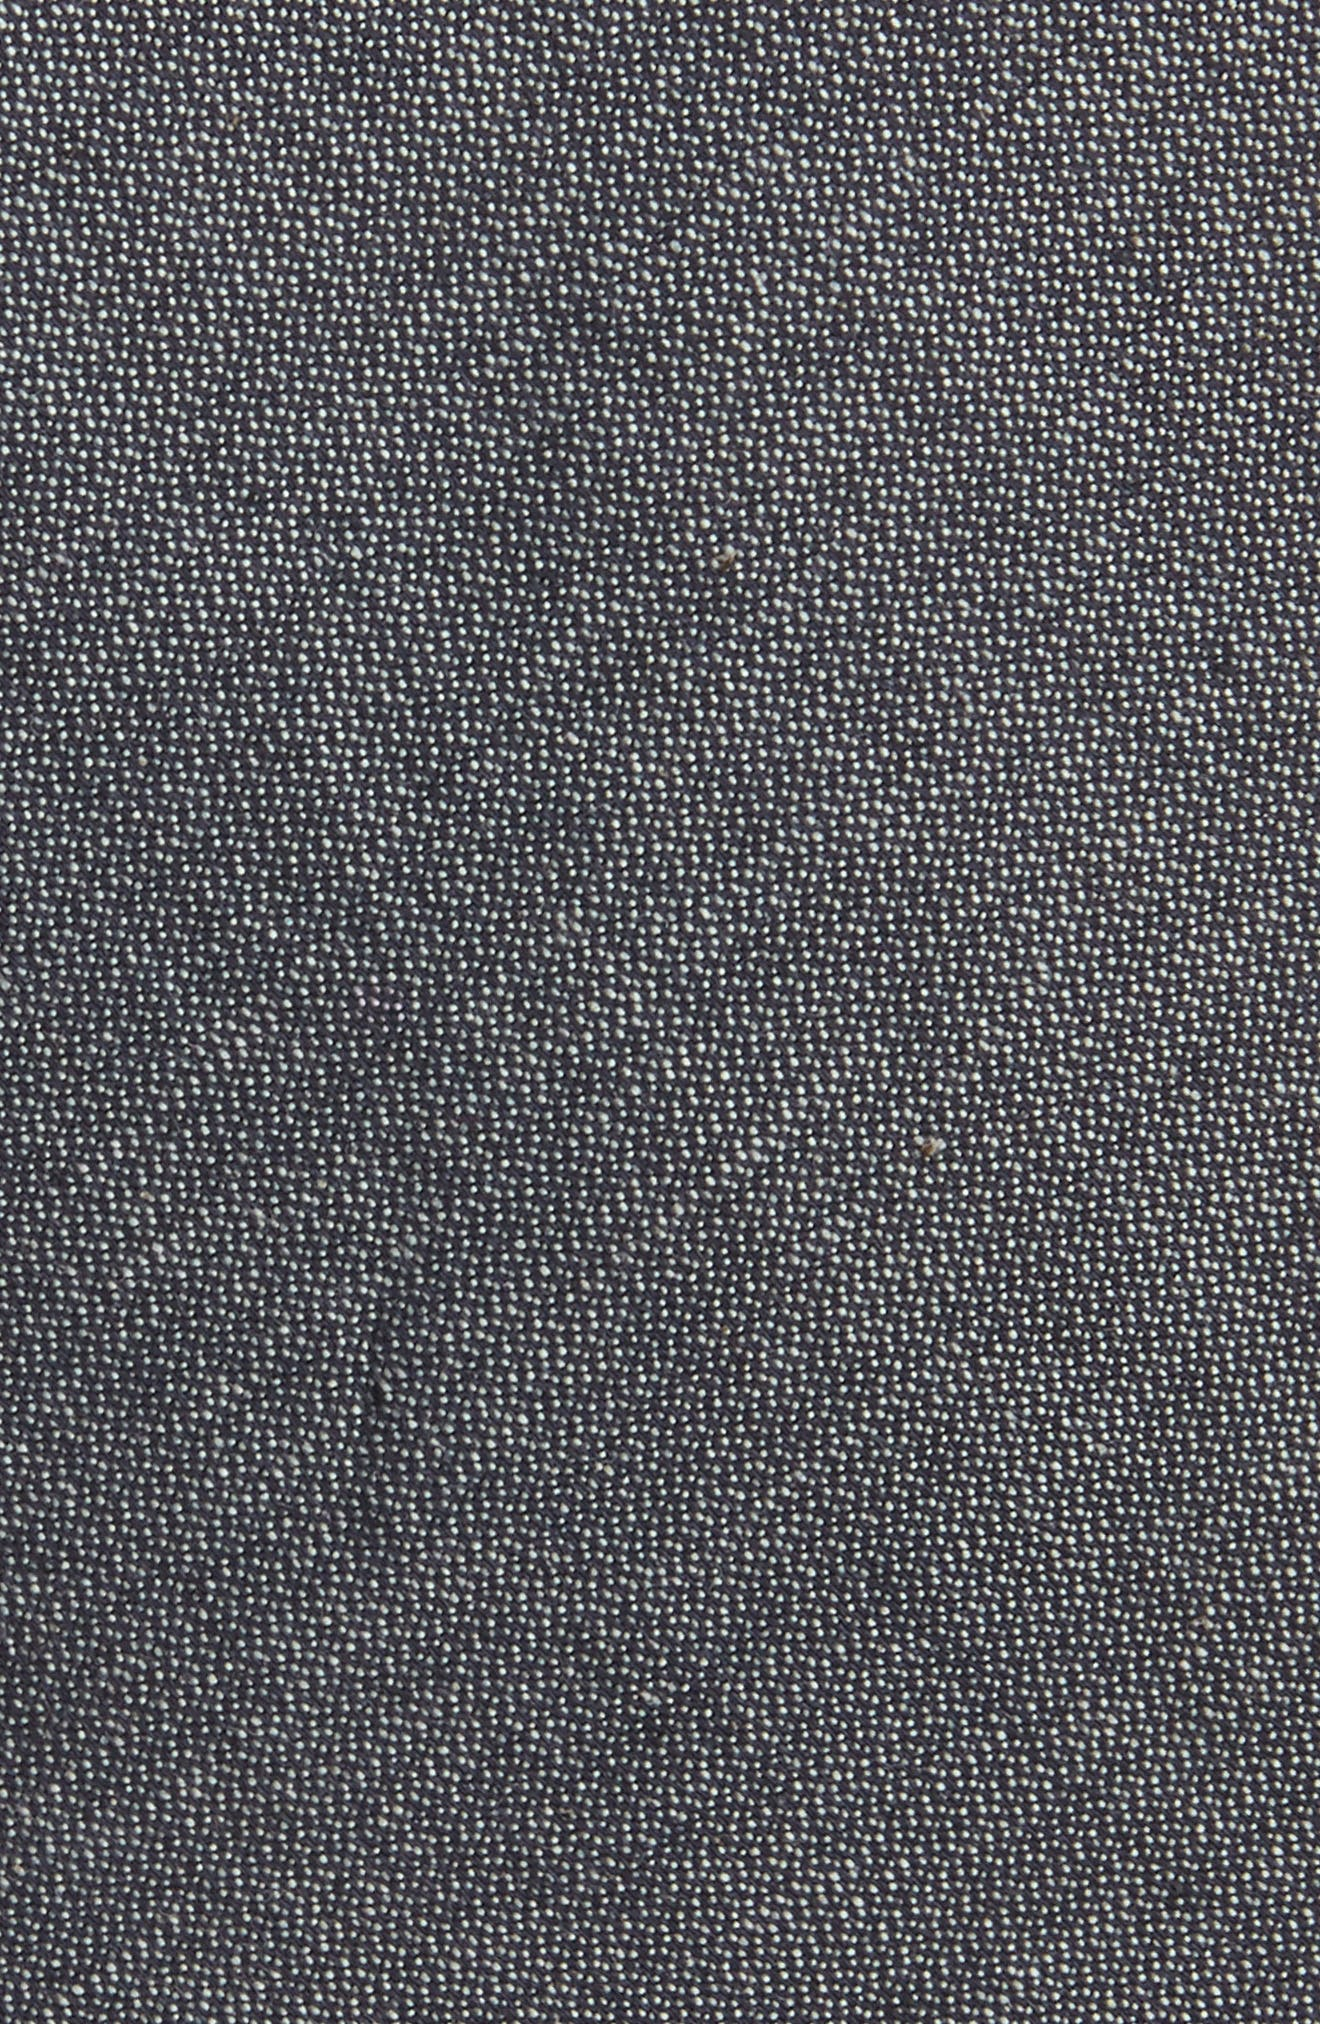 Alternate Image 2  - Nordstrom Men's Shop Solid Cotton Tie